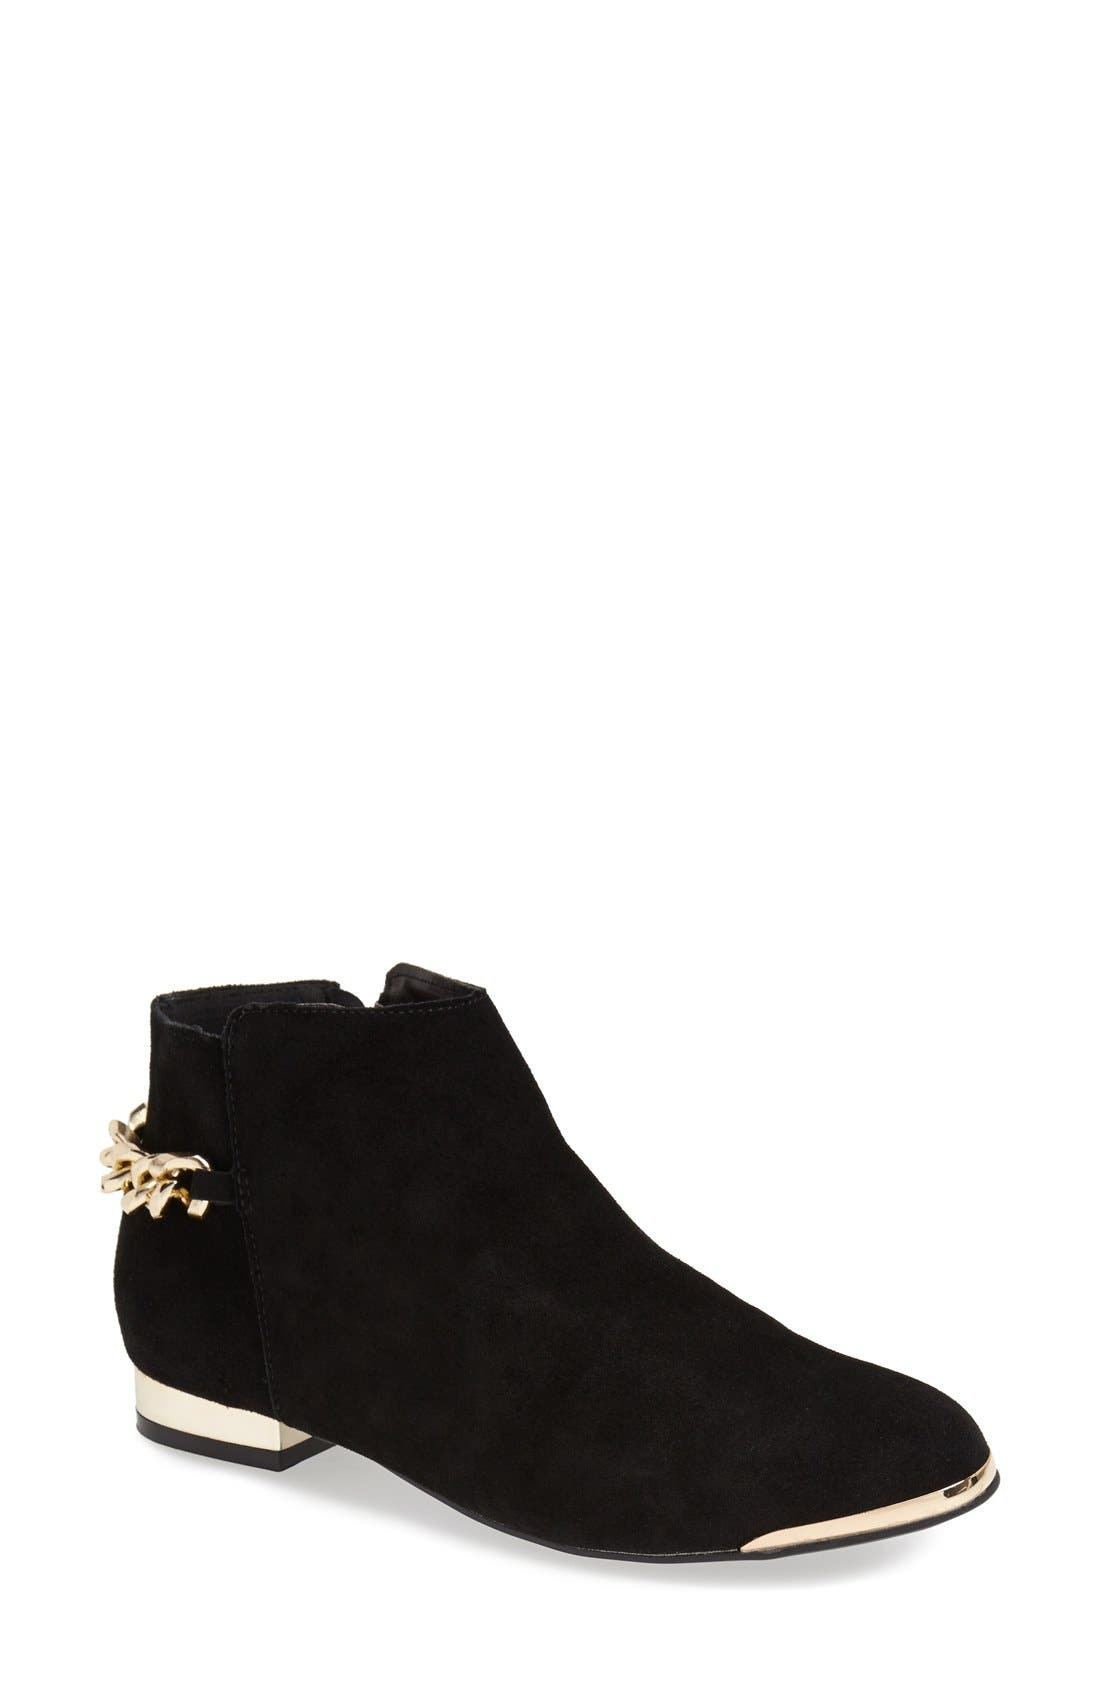 Alternate Image 1 Selected - Topshop 'Bam Bam' Gold Chain Chelsea Boot (Women)